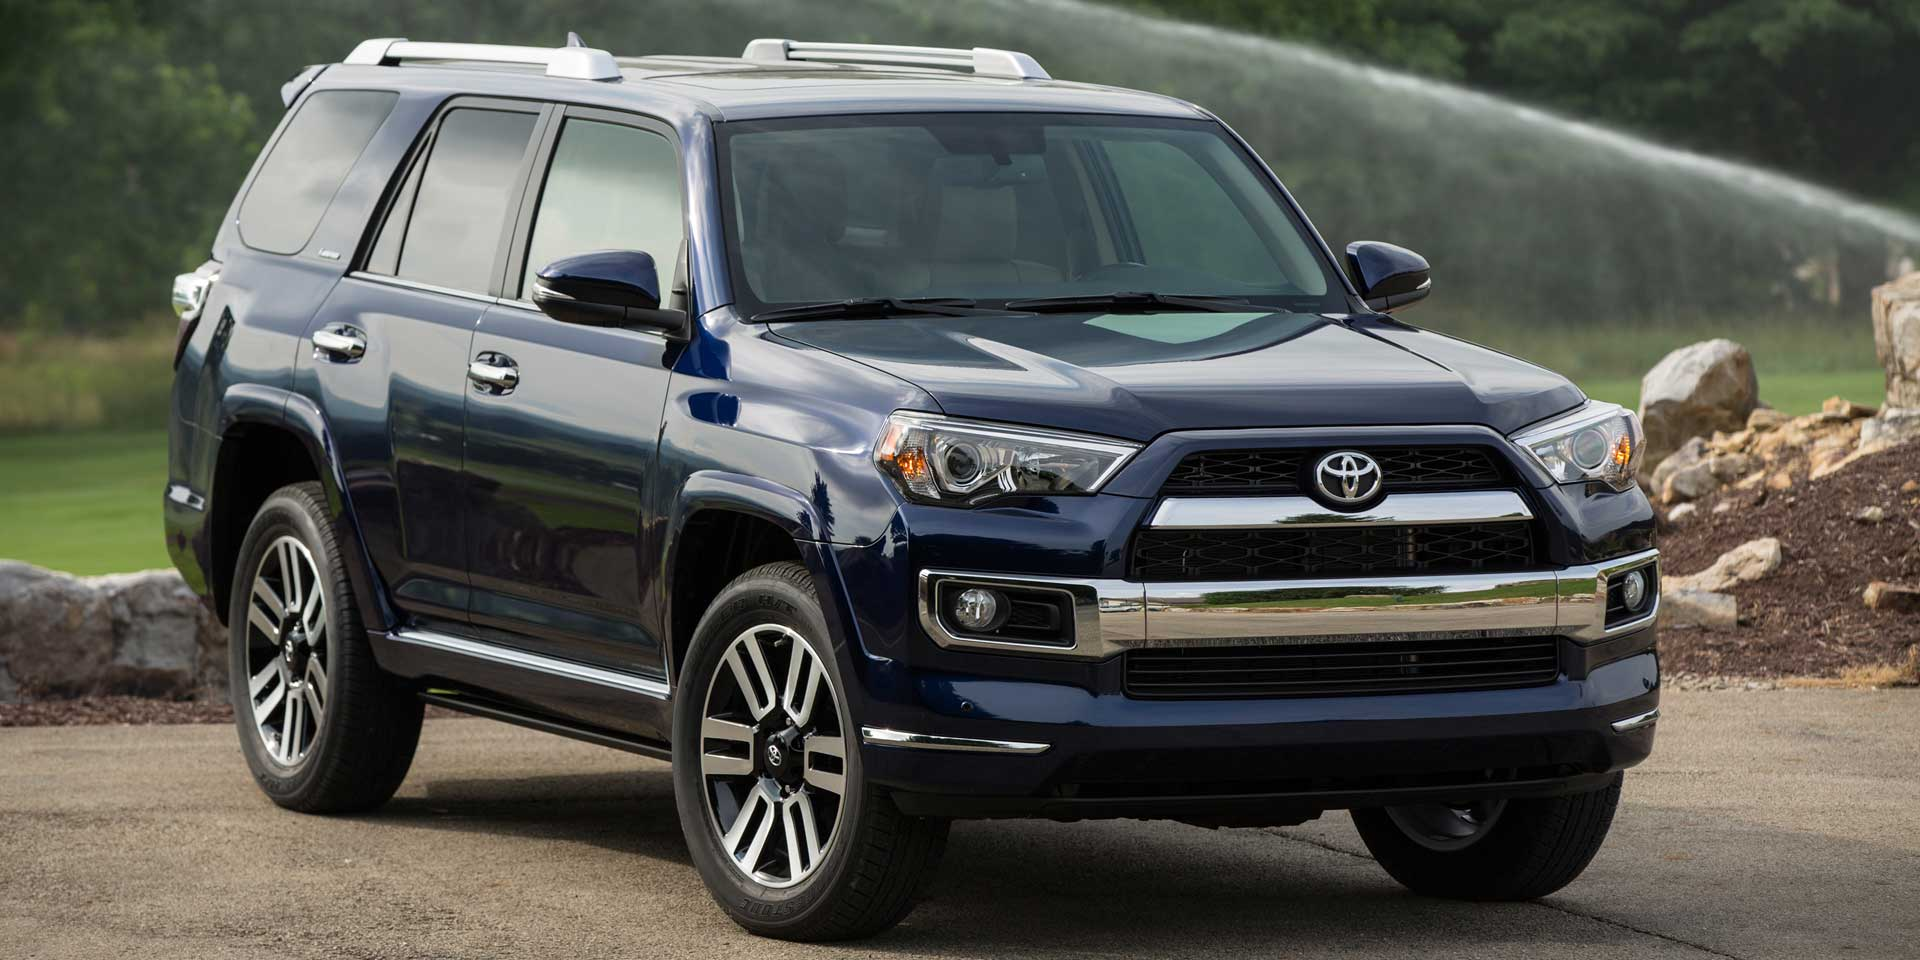 2017 toyota 4runner vehicles on display chicago auto show. Black Bedroom Furniture Sets. Home Design Ideas